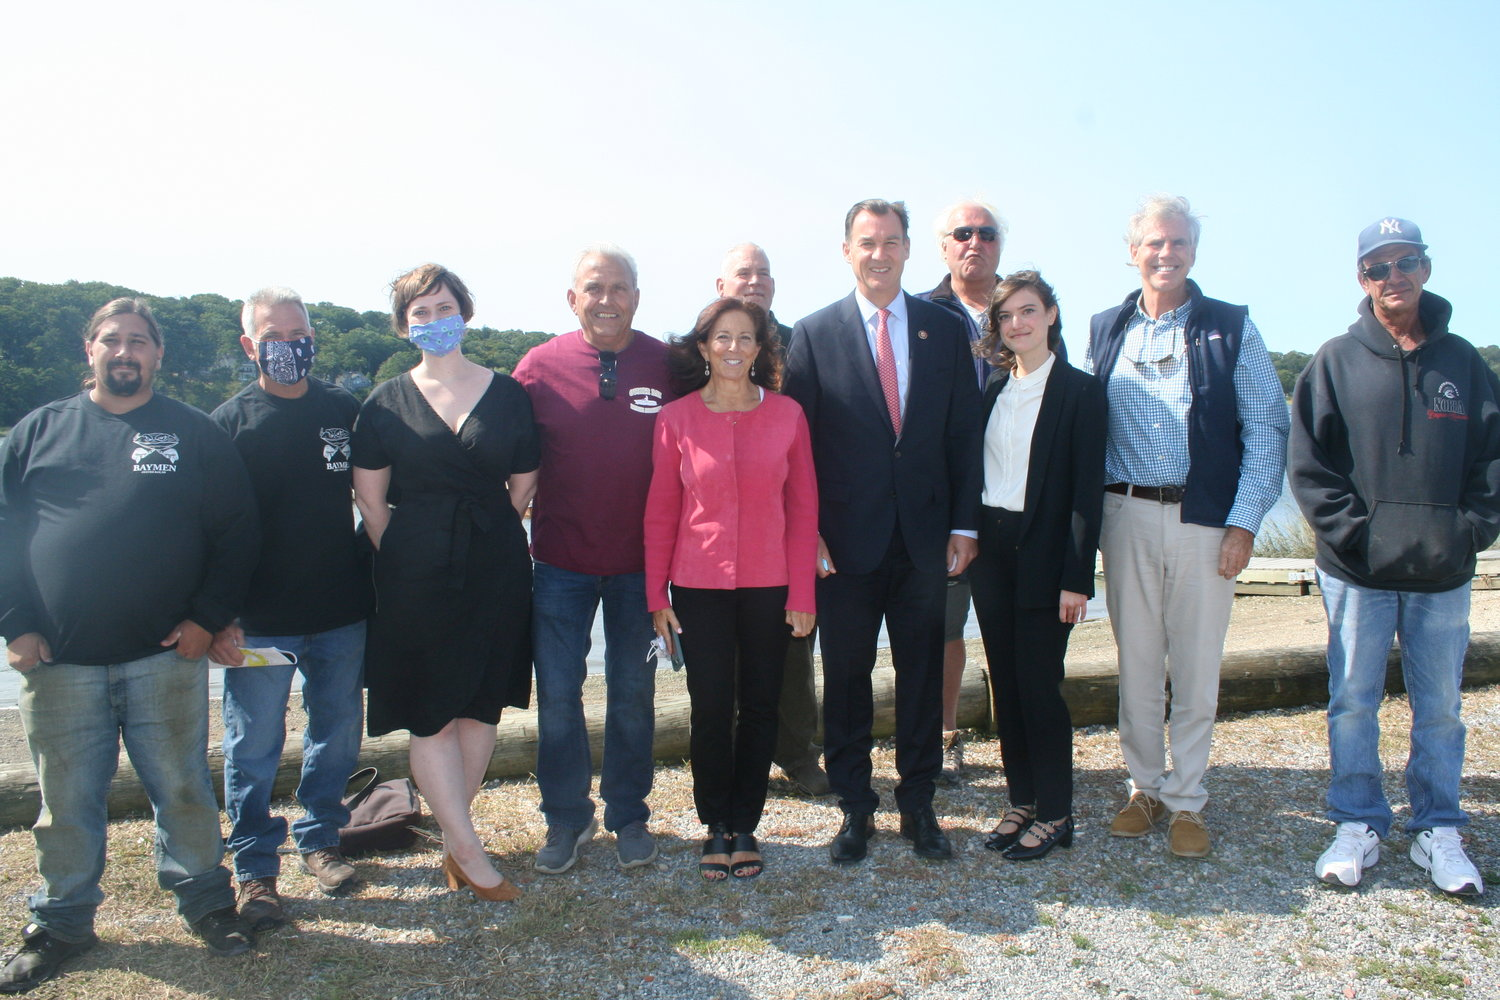 U.S. Rep. Tom Suozzi, fifth from right, and a number of environmental activists called for the Army Corps of Engineers to review Frank M. Flower & Sons' right to harvest shellfish using hydraulic dredging in Oyster Bay Harbor.